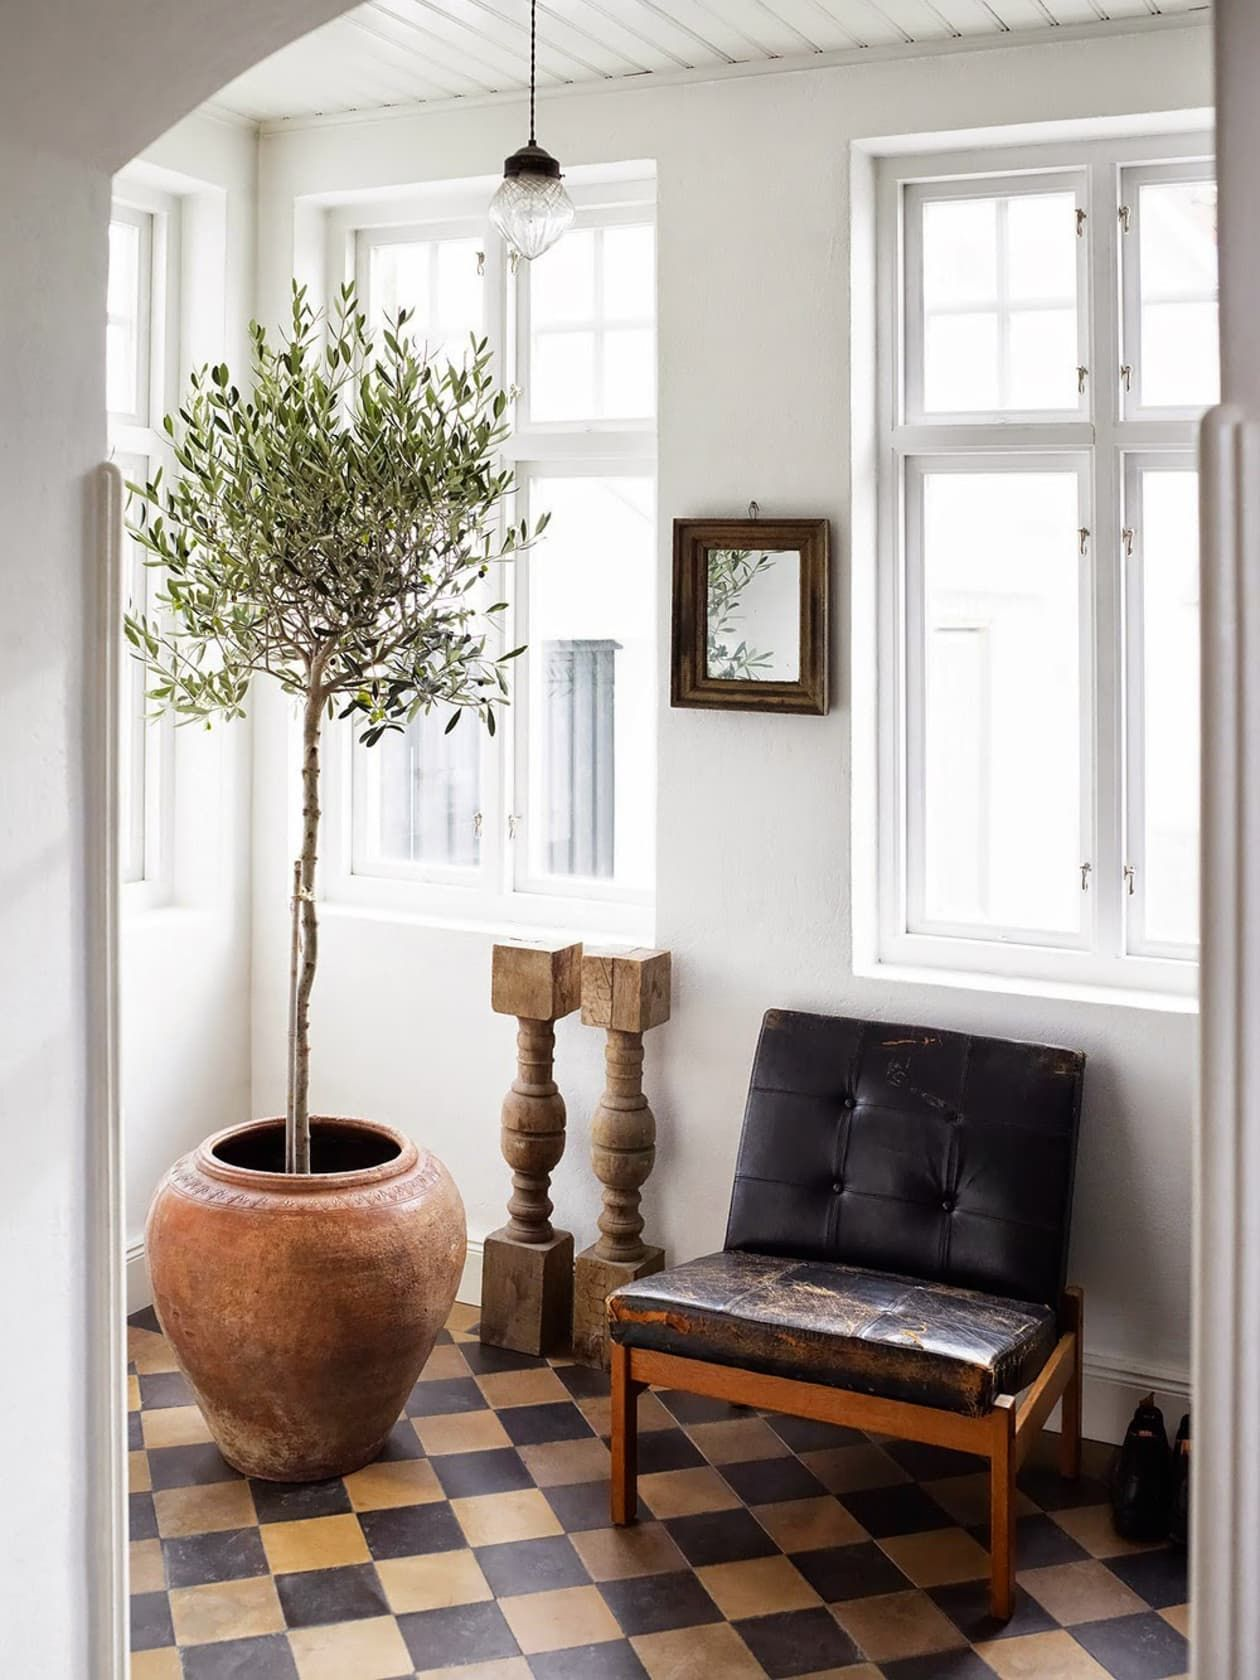 Olive Trees Are Next Big Thing Tree Taking Over The Design World How To Take Care Of It In 2020 Indoor Olive Tree Home Decor Trends Trending Decor